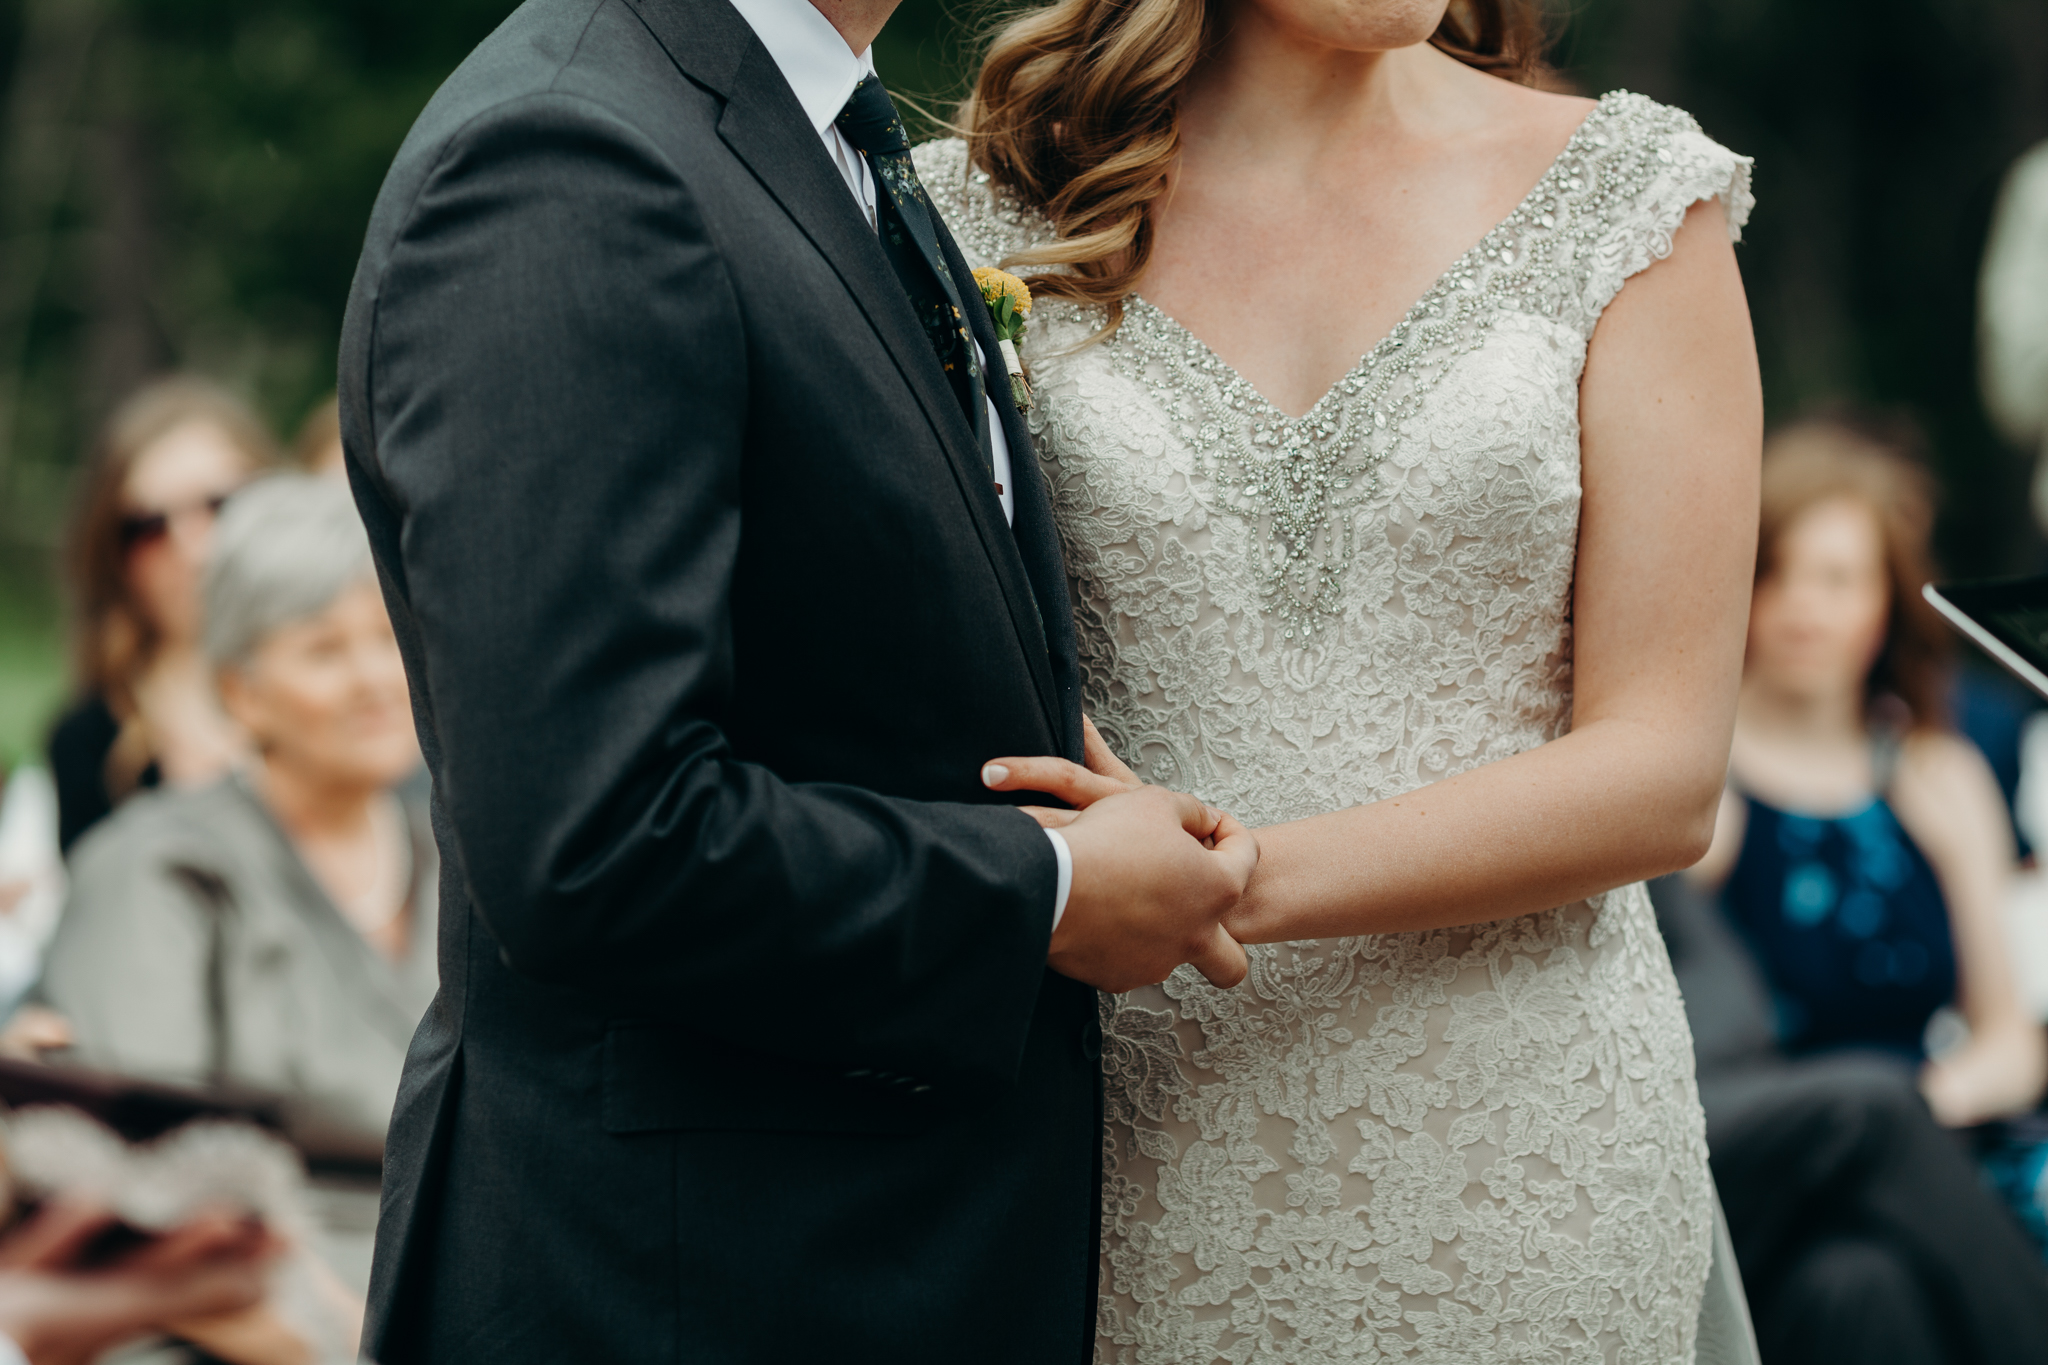 Close up photo of bride and groom holding hands at wedding ceremony